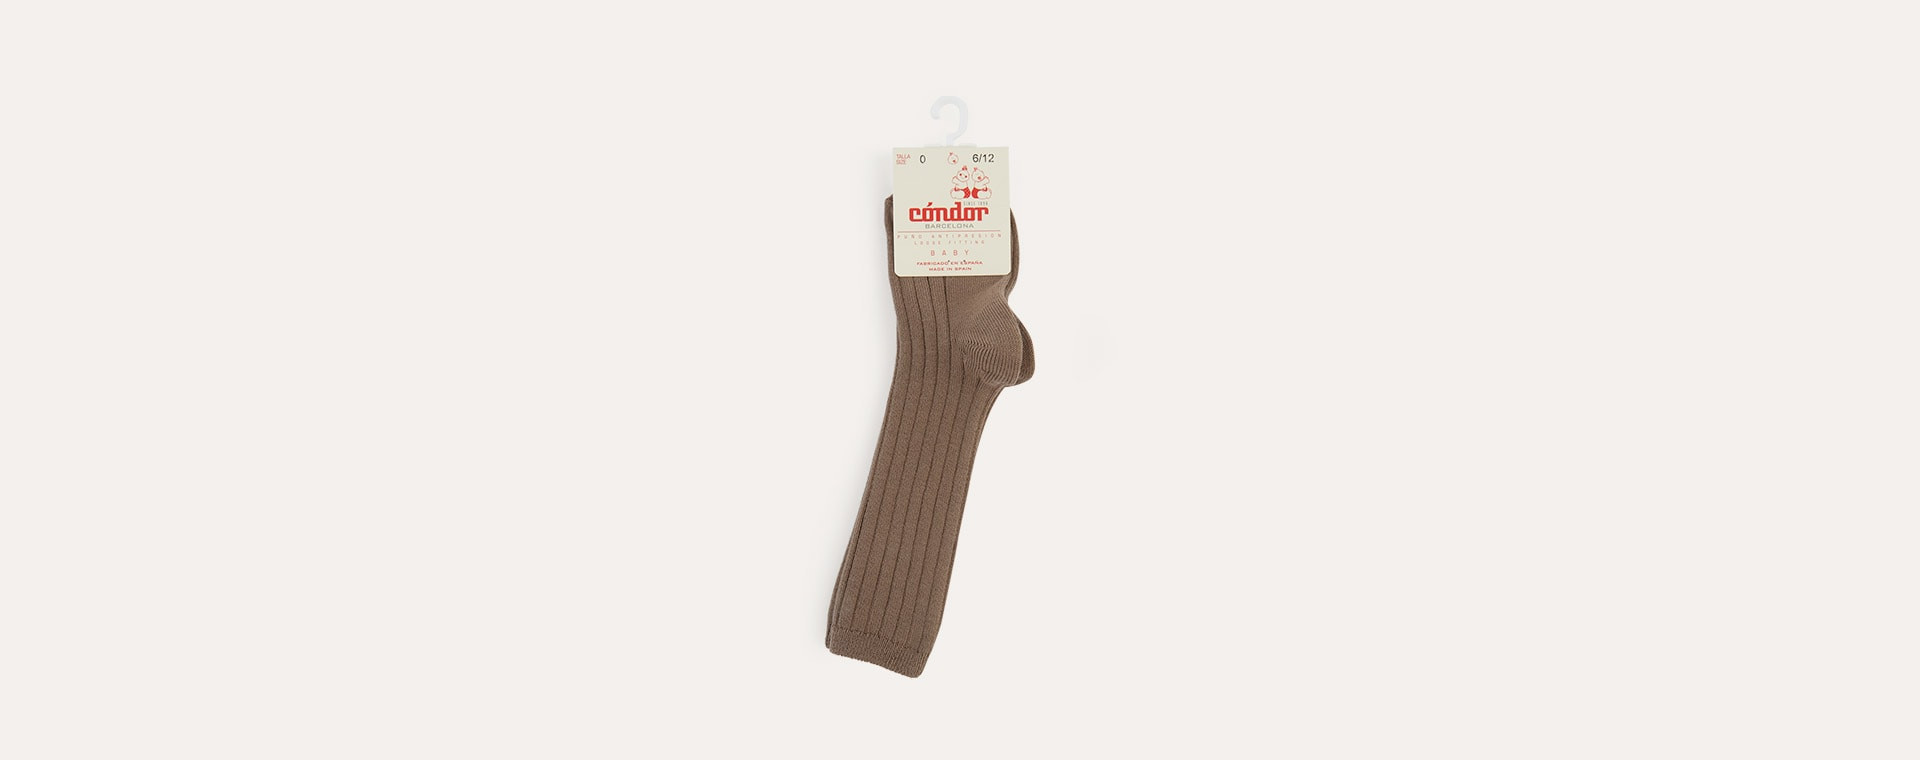 Mink Condor Ribbed Knee High Socks